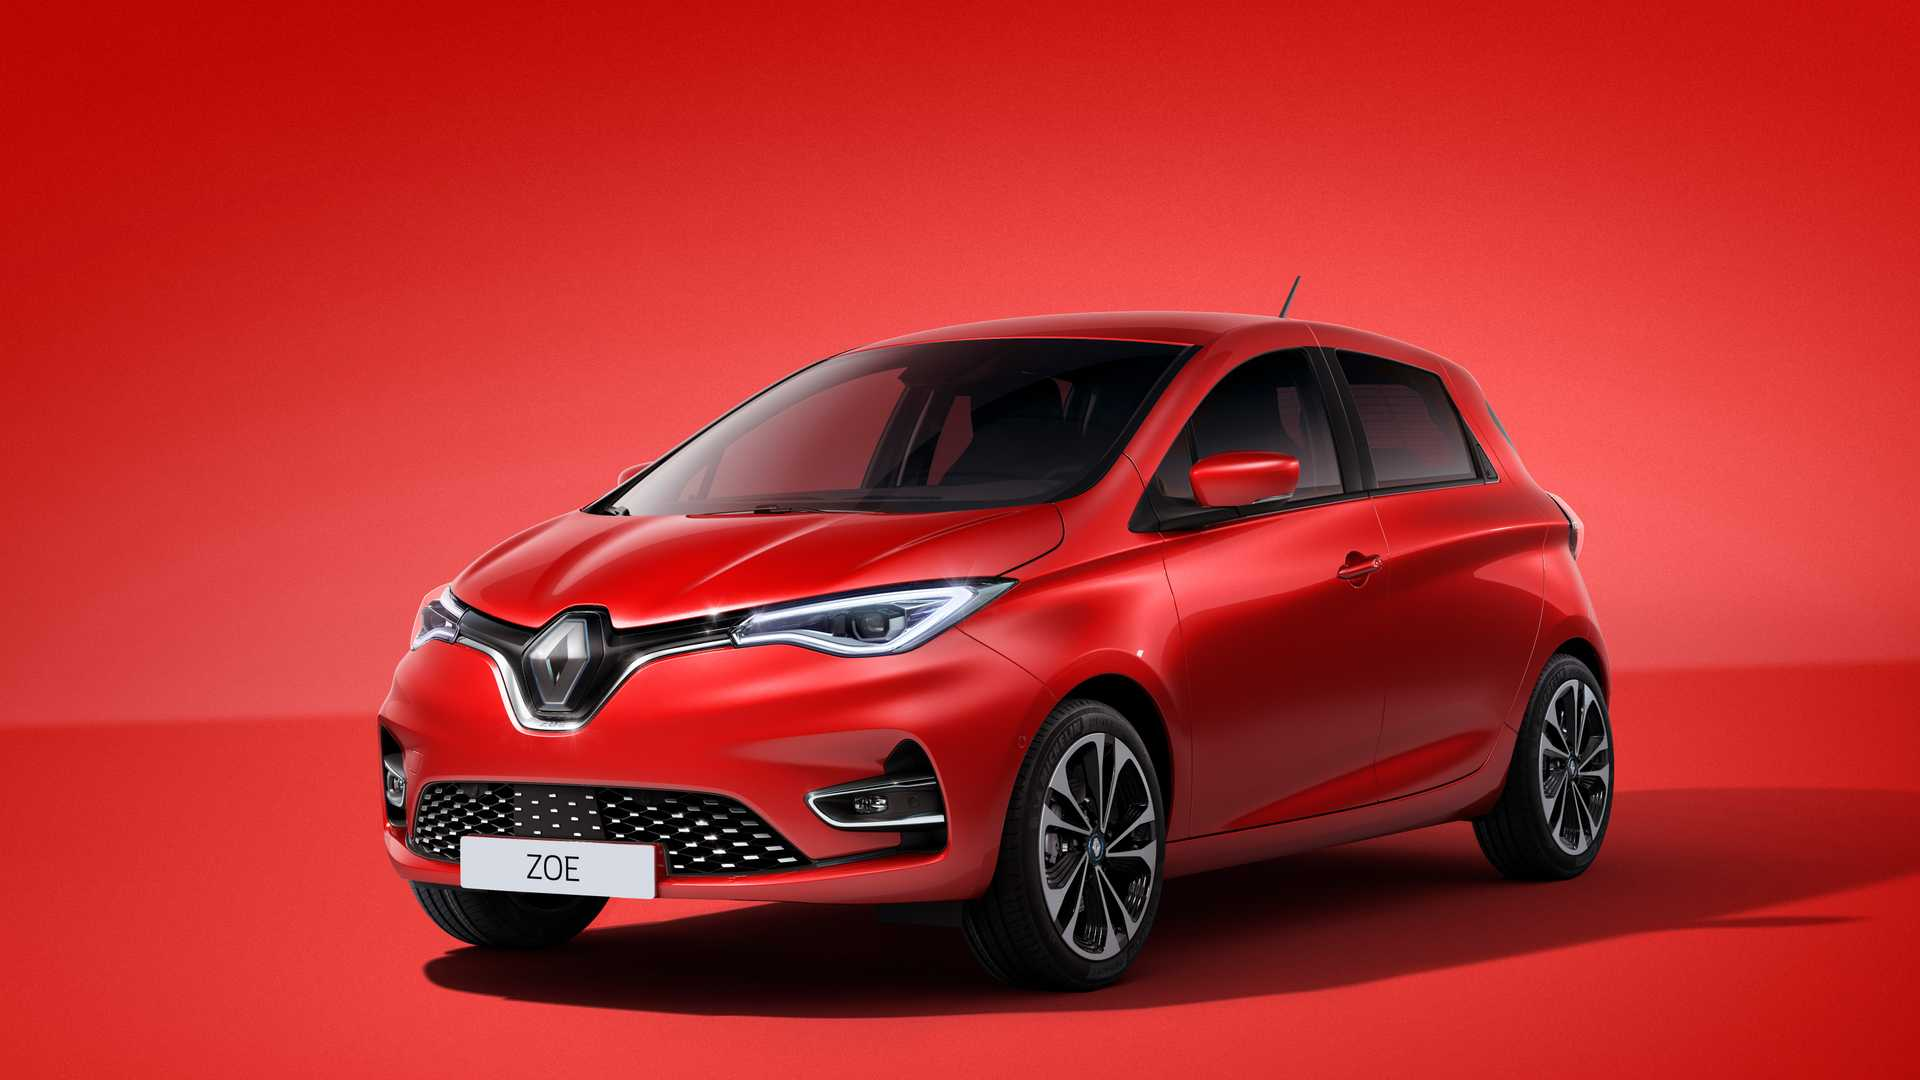 2019 Renault Zoe press image